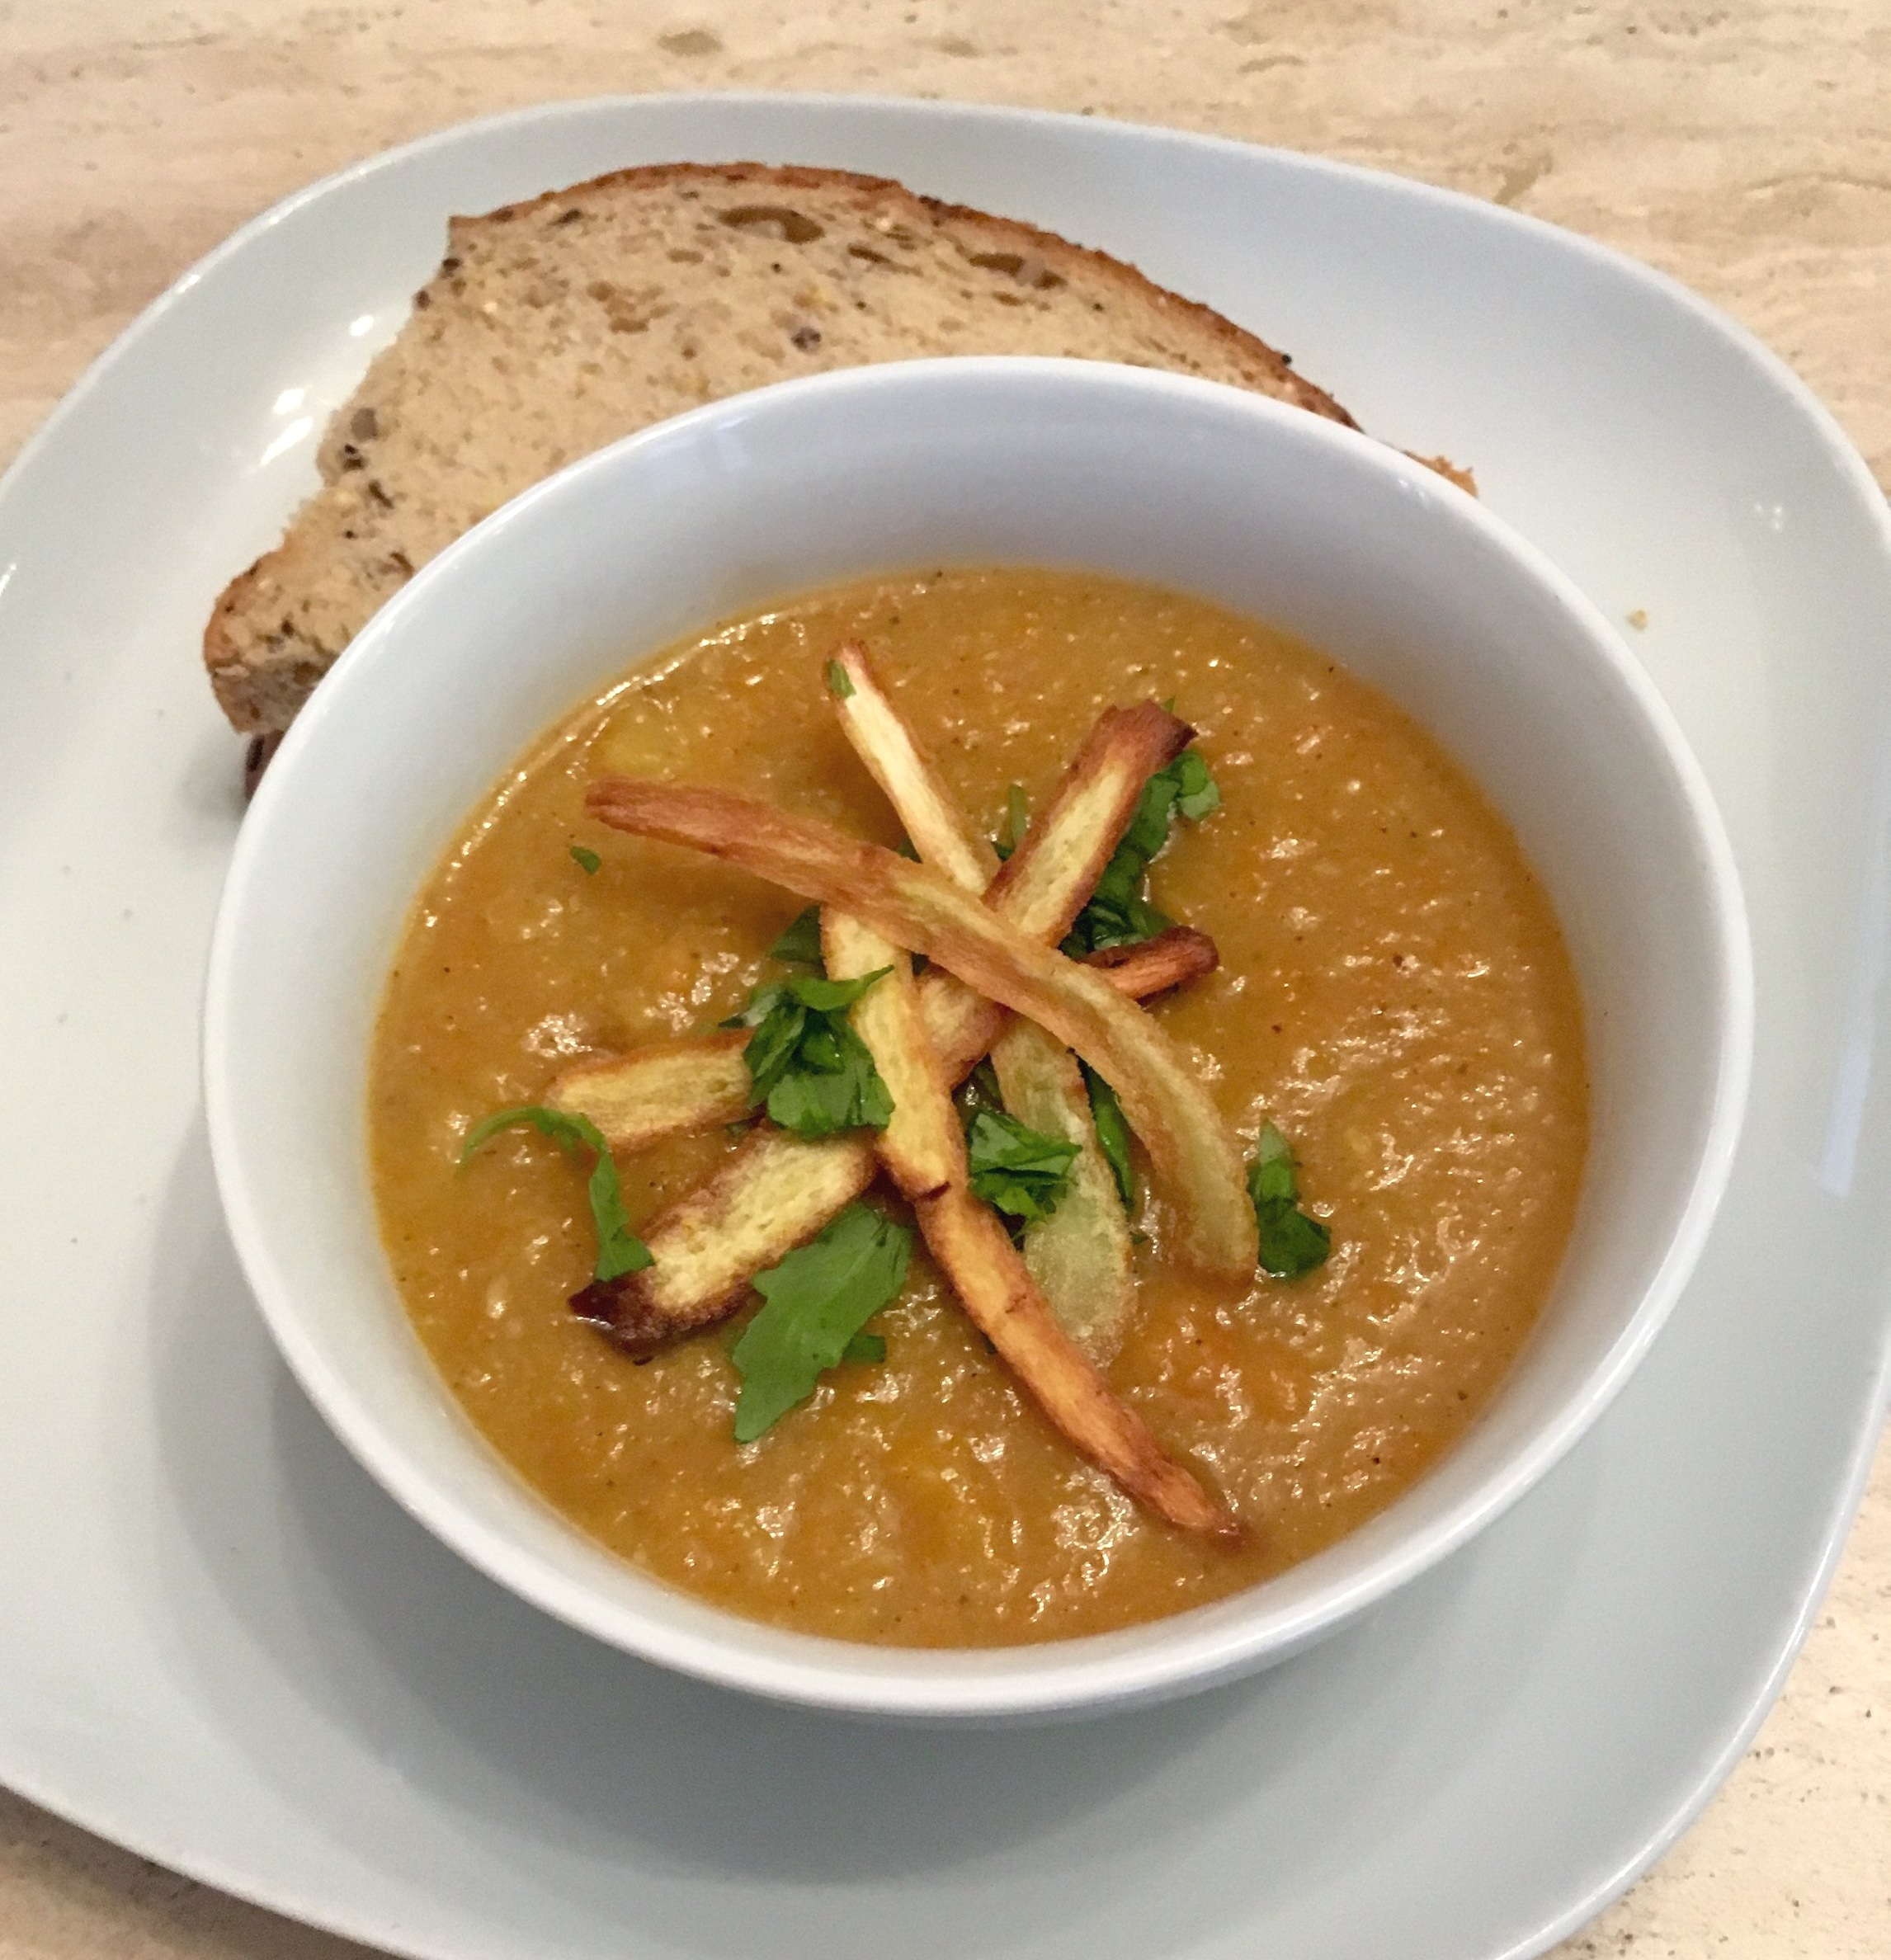 A bowl of carrot and parnsip soup with crispy parsnips and spinach on top. the Bowl is placed on top of a larger plate with 2 triangles of brown seeded bread.